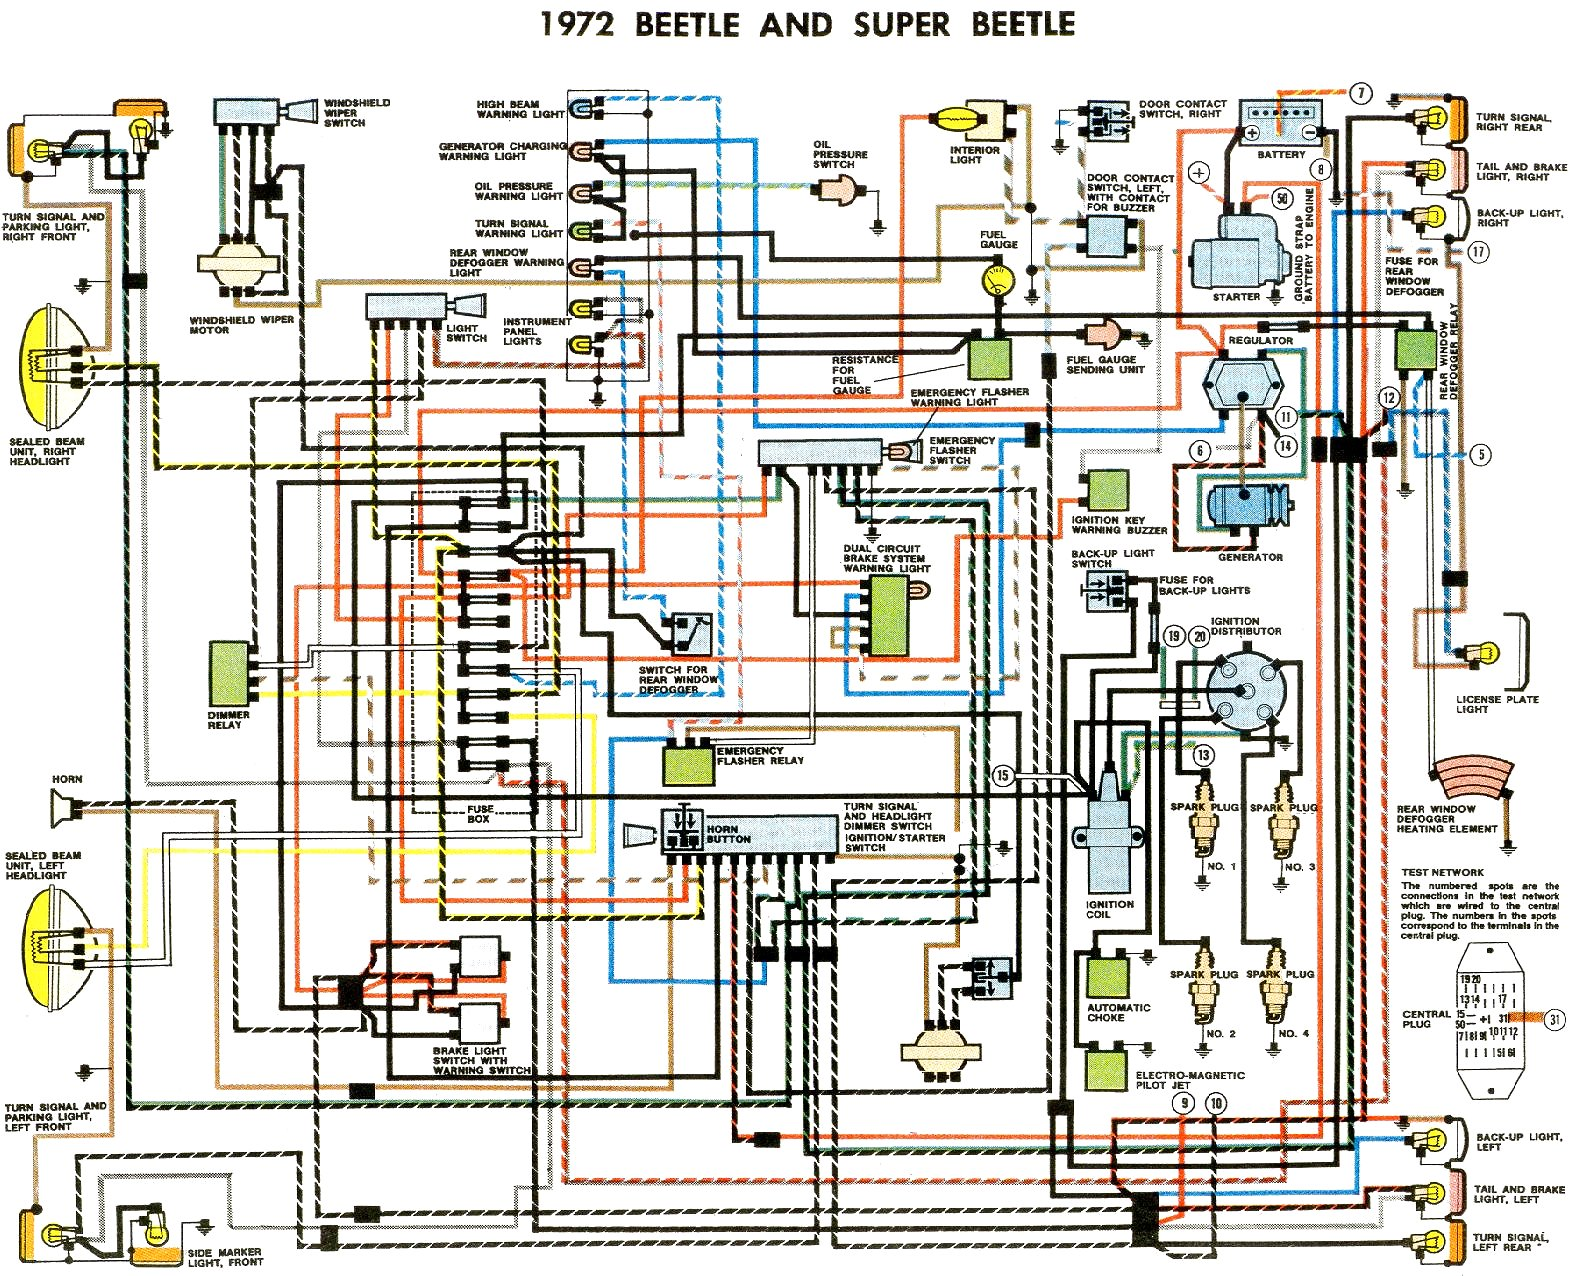 vw beetle wiring diagram 1974 1961 vw bug wiring